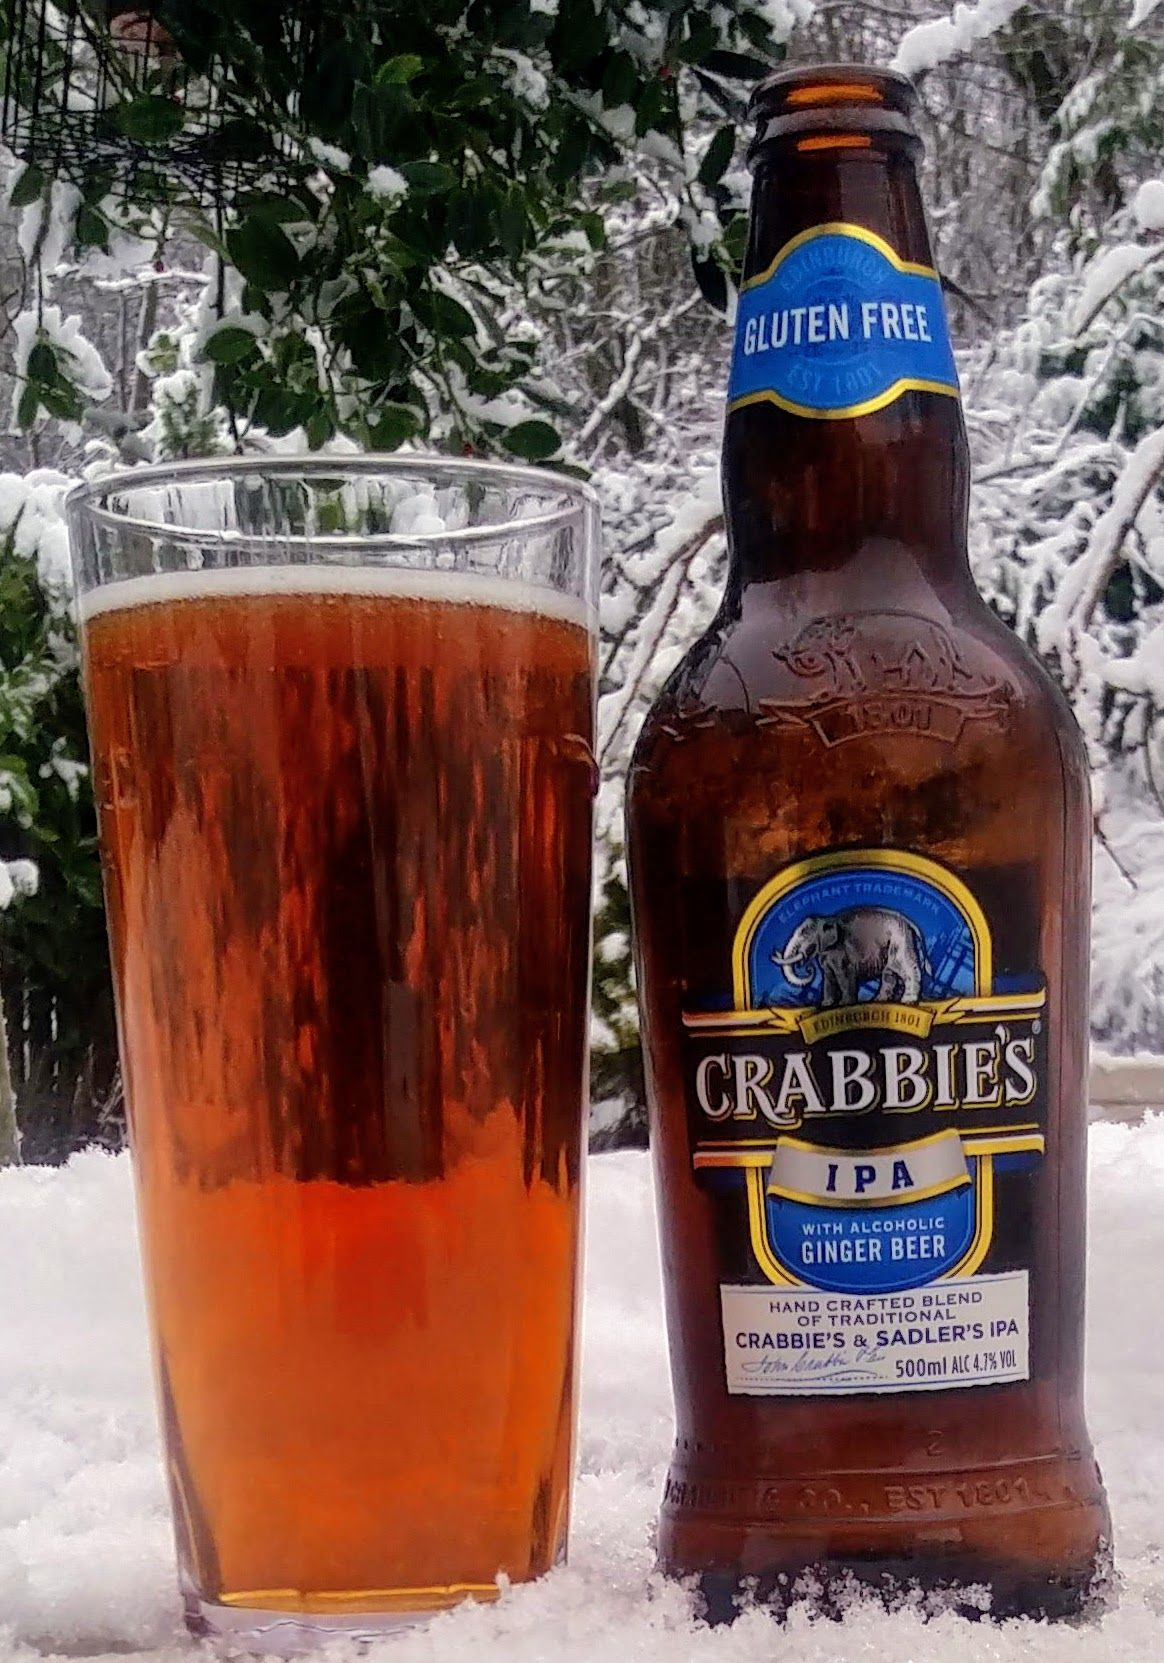 Crabbies Ipa From Crabbies Crabbies Ginger Beer With Sadler S Ipa The Aroma Of Ginger Is Strong And This Is The Leading Taste El Beer Craft Beer Ginger Beer